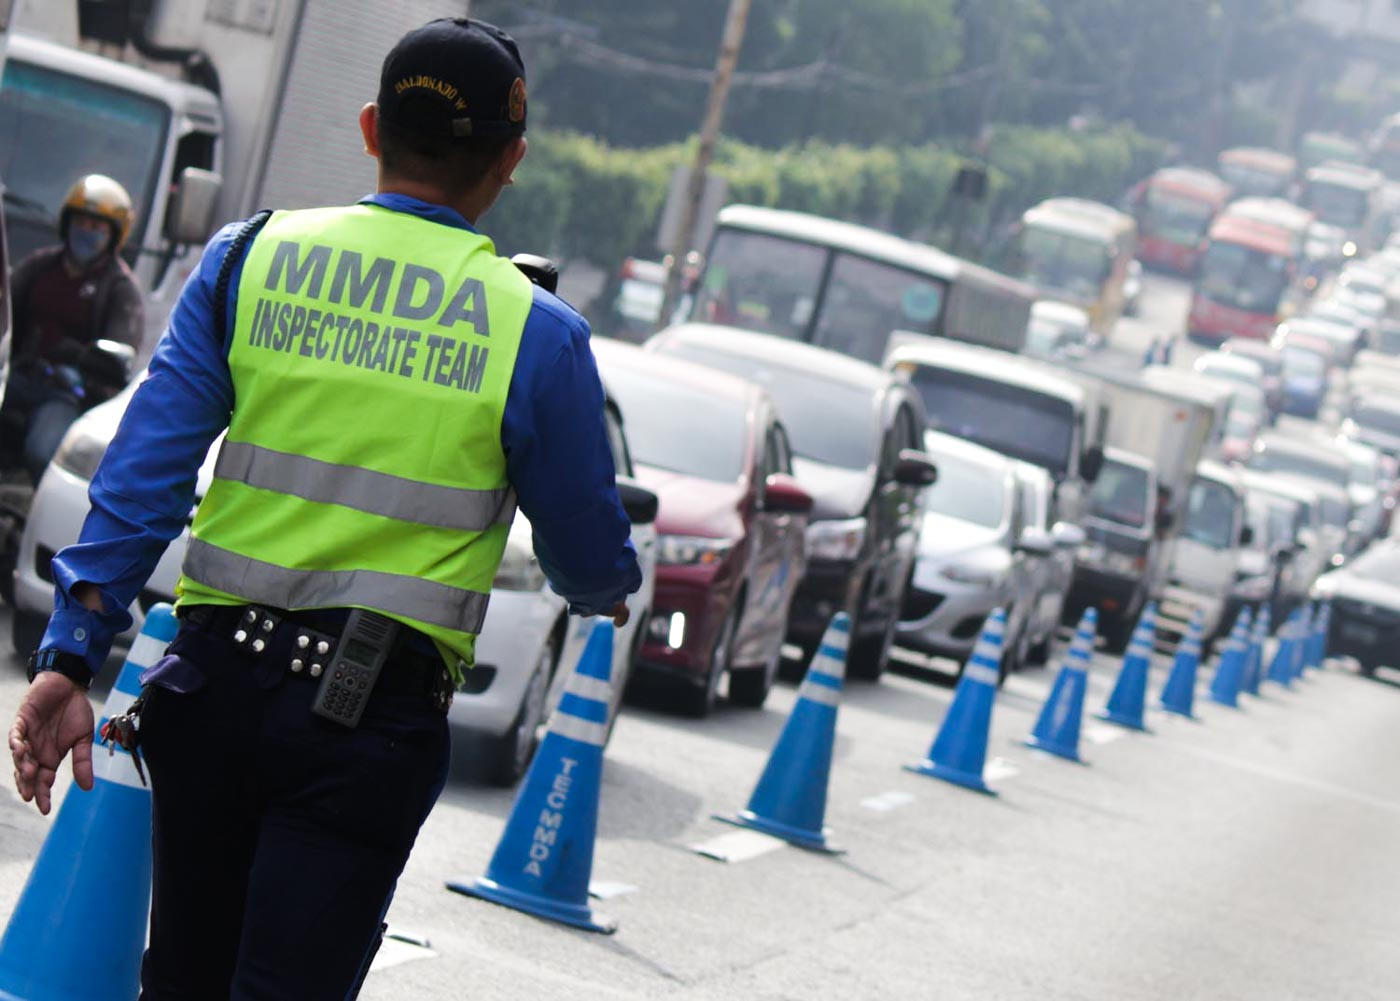 MANAGING ROADS. An MMDA enforcer manages traffic along EDSA. Photo by Darren Langit/Rappler